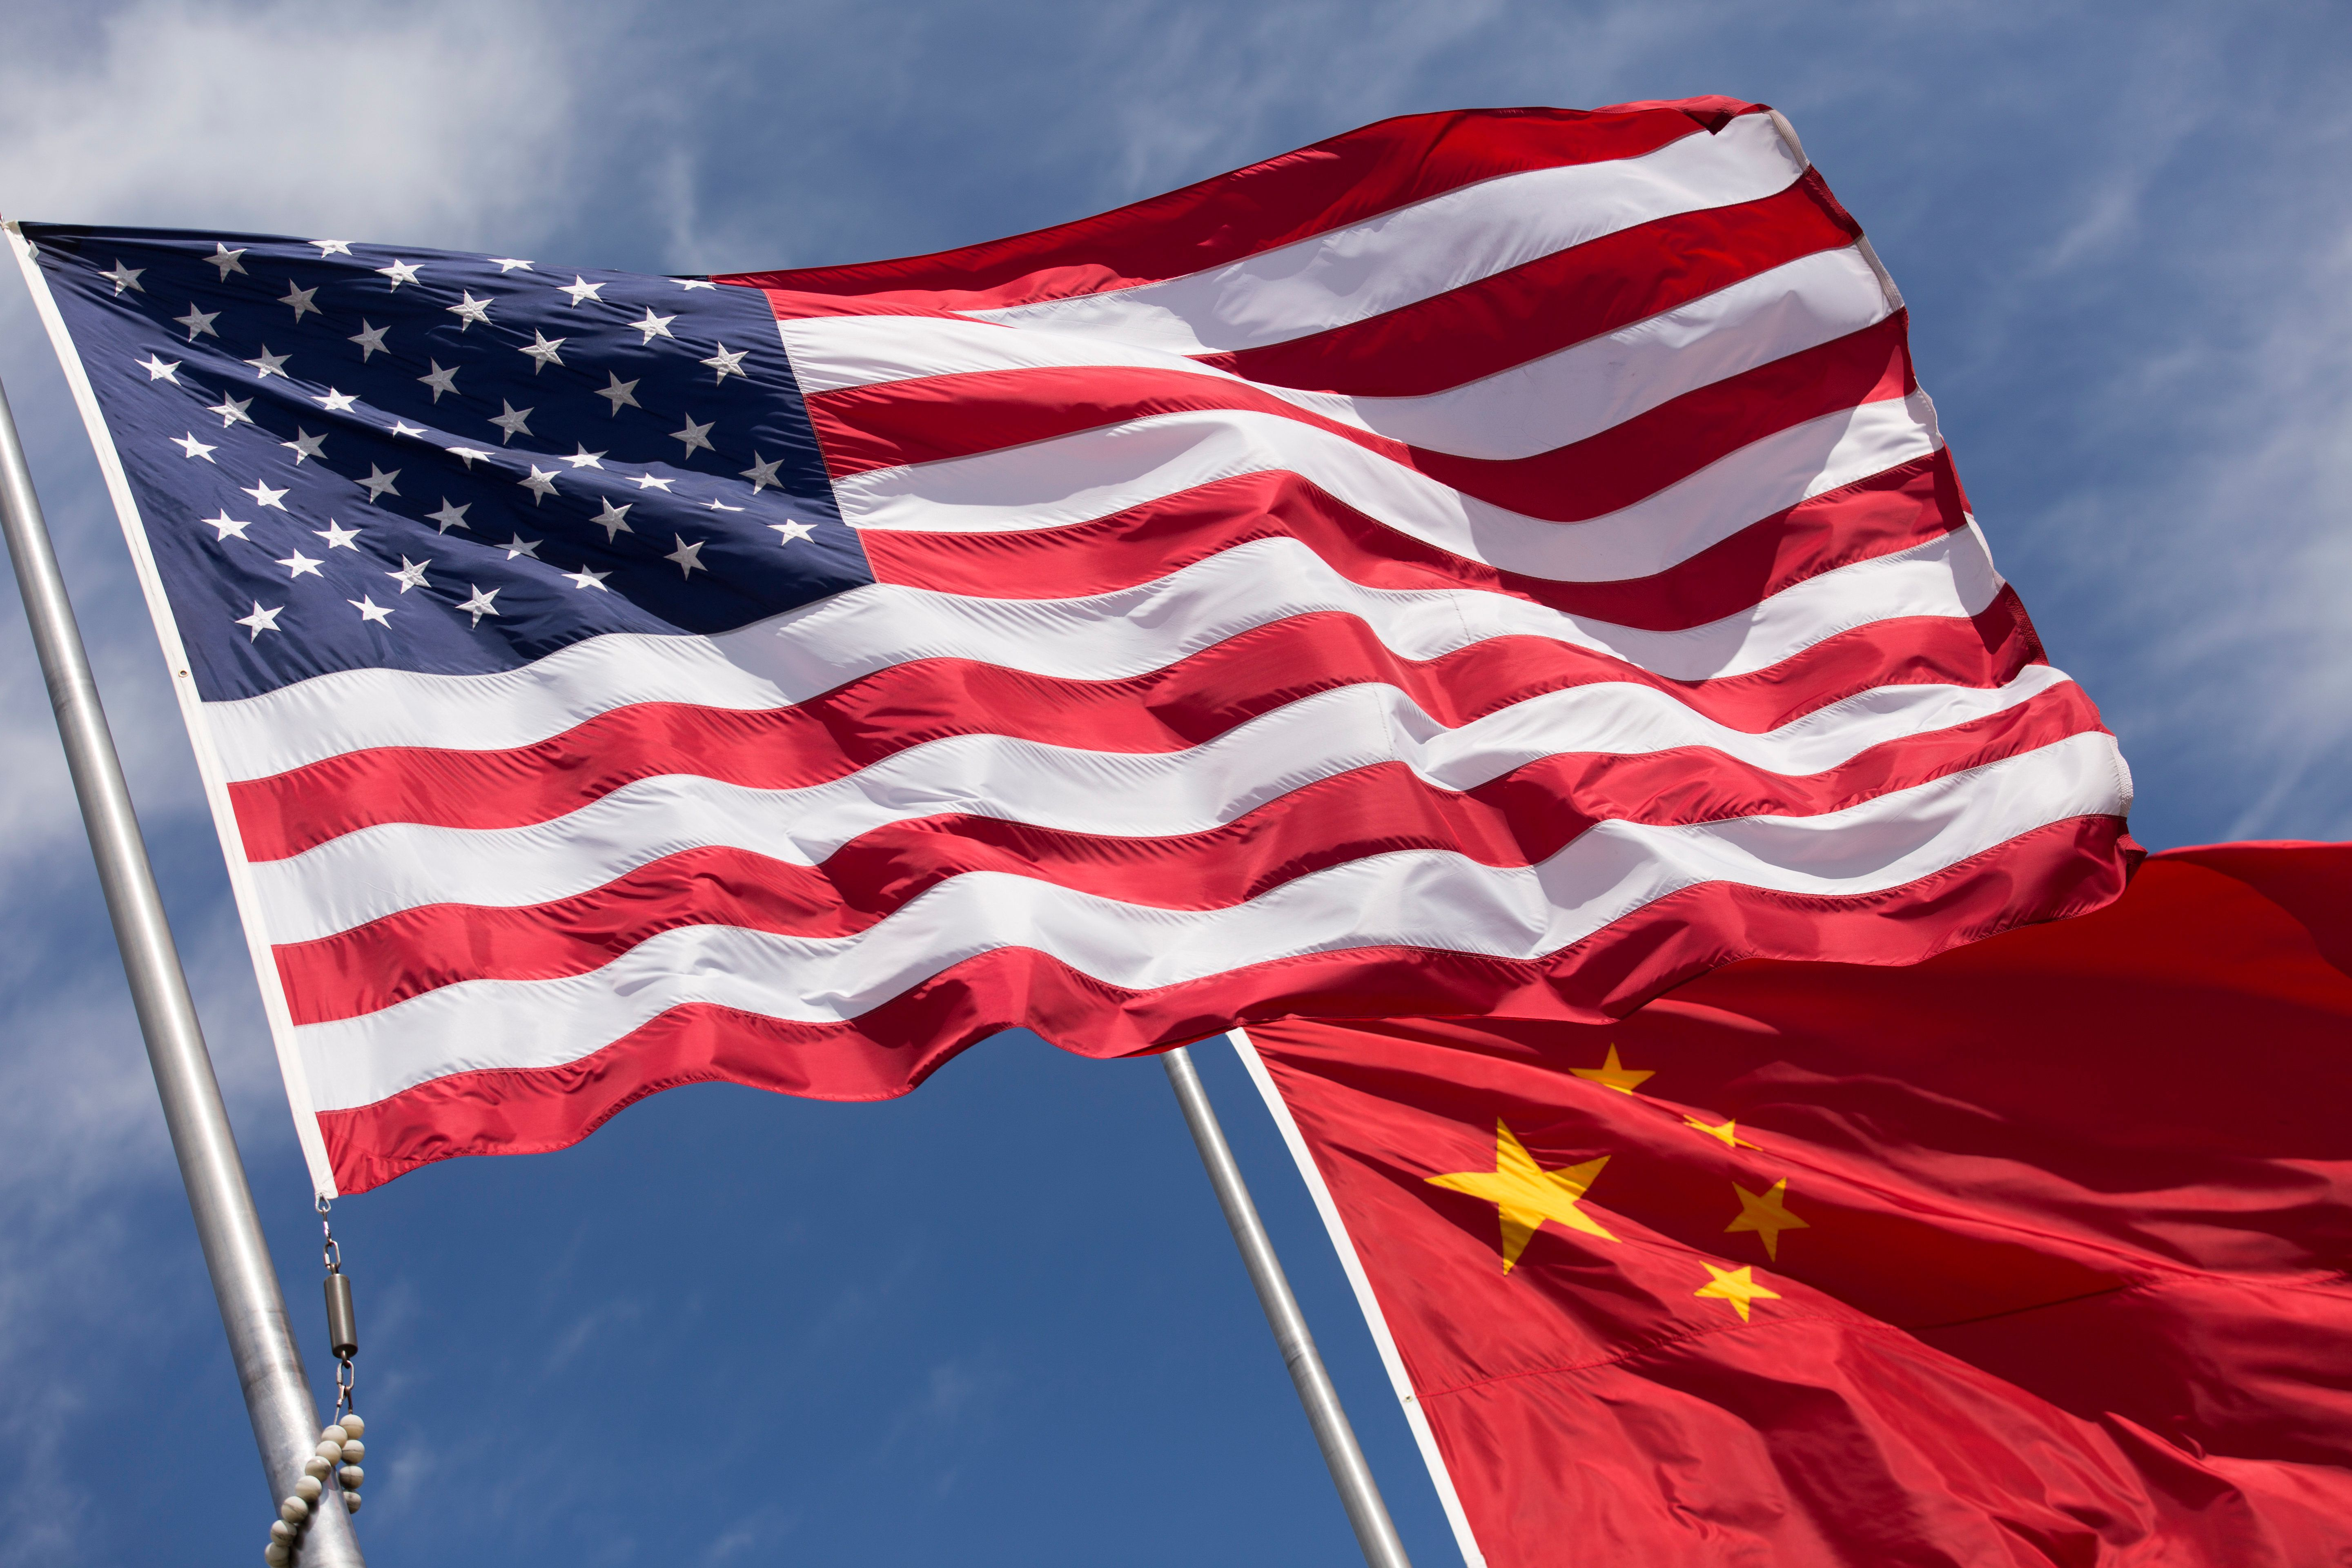 Symbolic of Sino-American relations, the flag of the United States of America and the flag of the Republic of China fly together on flag poles next to each other on a sunny, windy day.